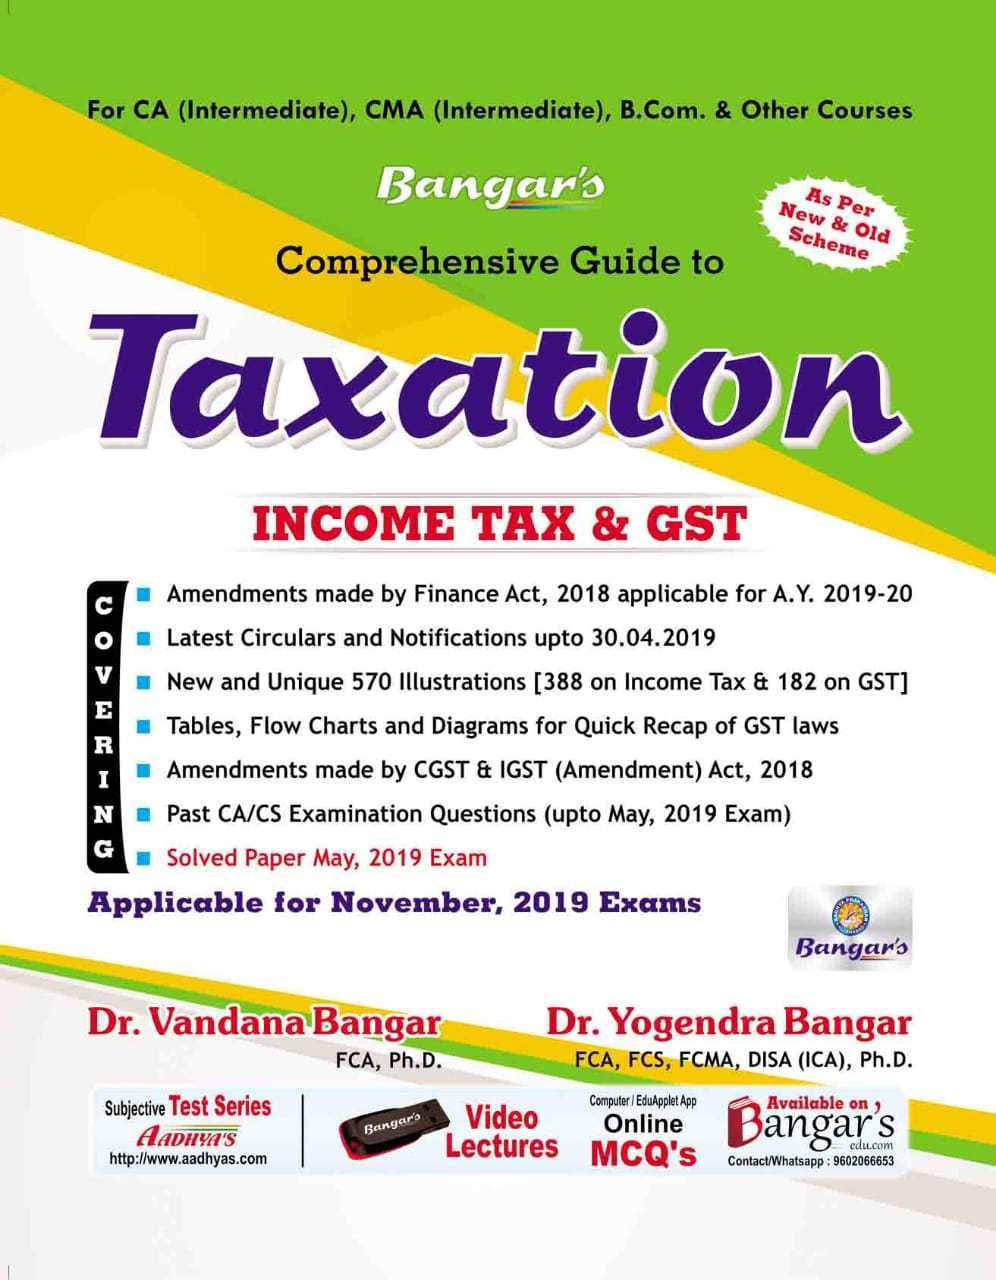 Aadhya Prakashan Comprehensive Guide to Taxation (Income Tax and GST) Old and New Syllabus both for CA Intermediate,CMA Intermediate By Vandana Bangar, Yogendra Bangar Applicable for Nov 2019 Exam